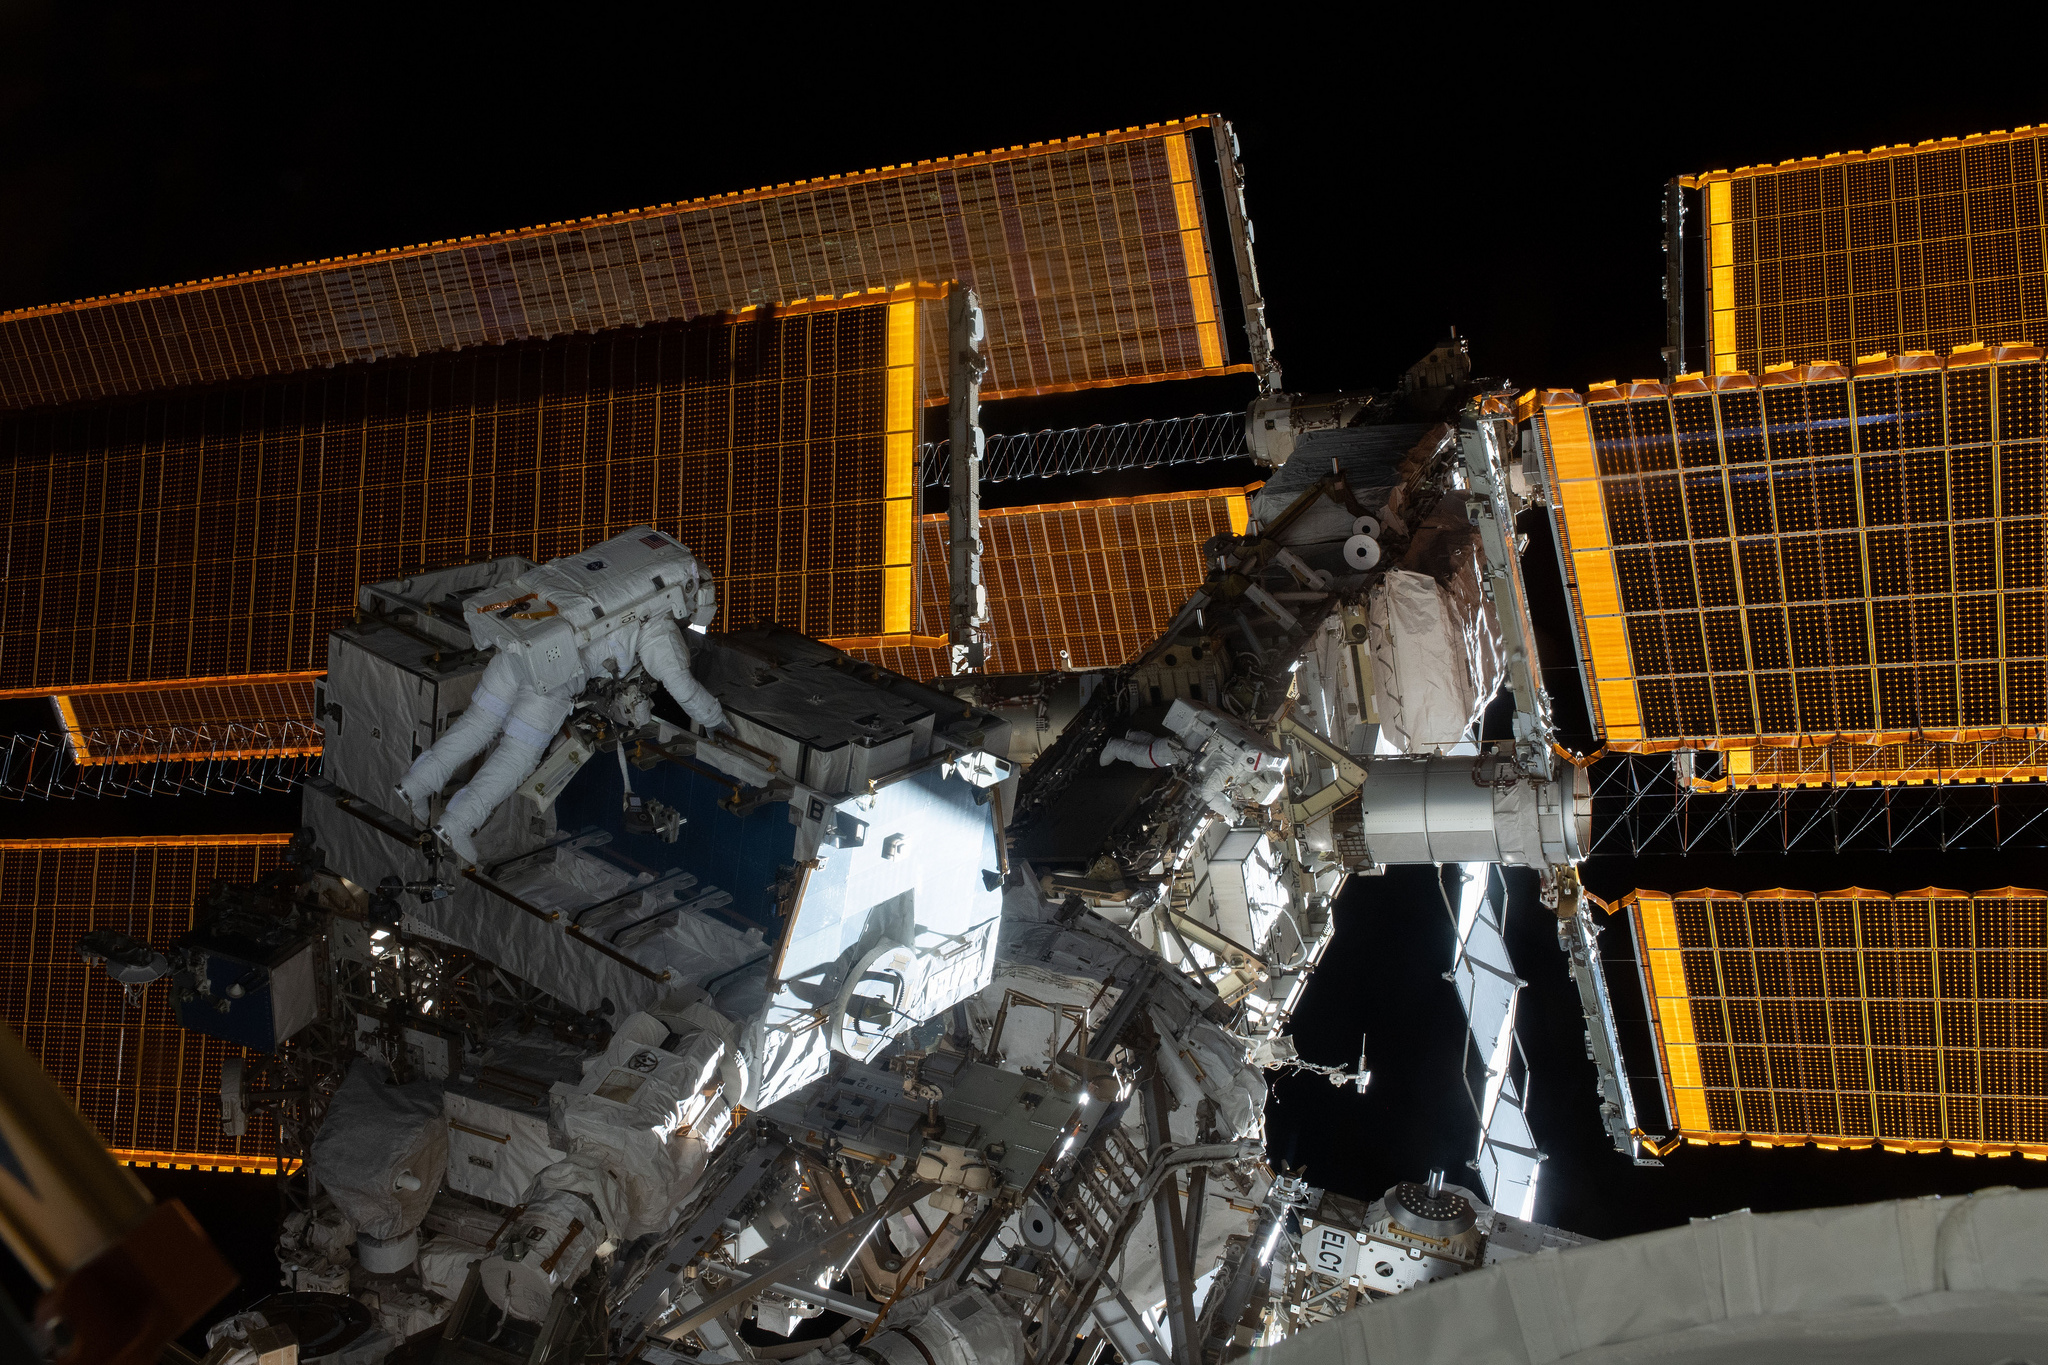 NASA astronauts Nick Hague, left, and Anne McClain work to replace batteries on the P4 truss. Credit: NASA